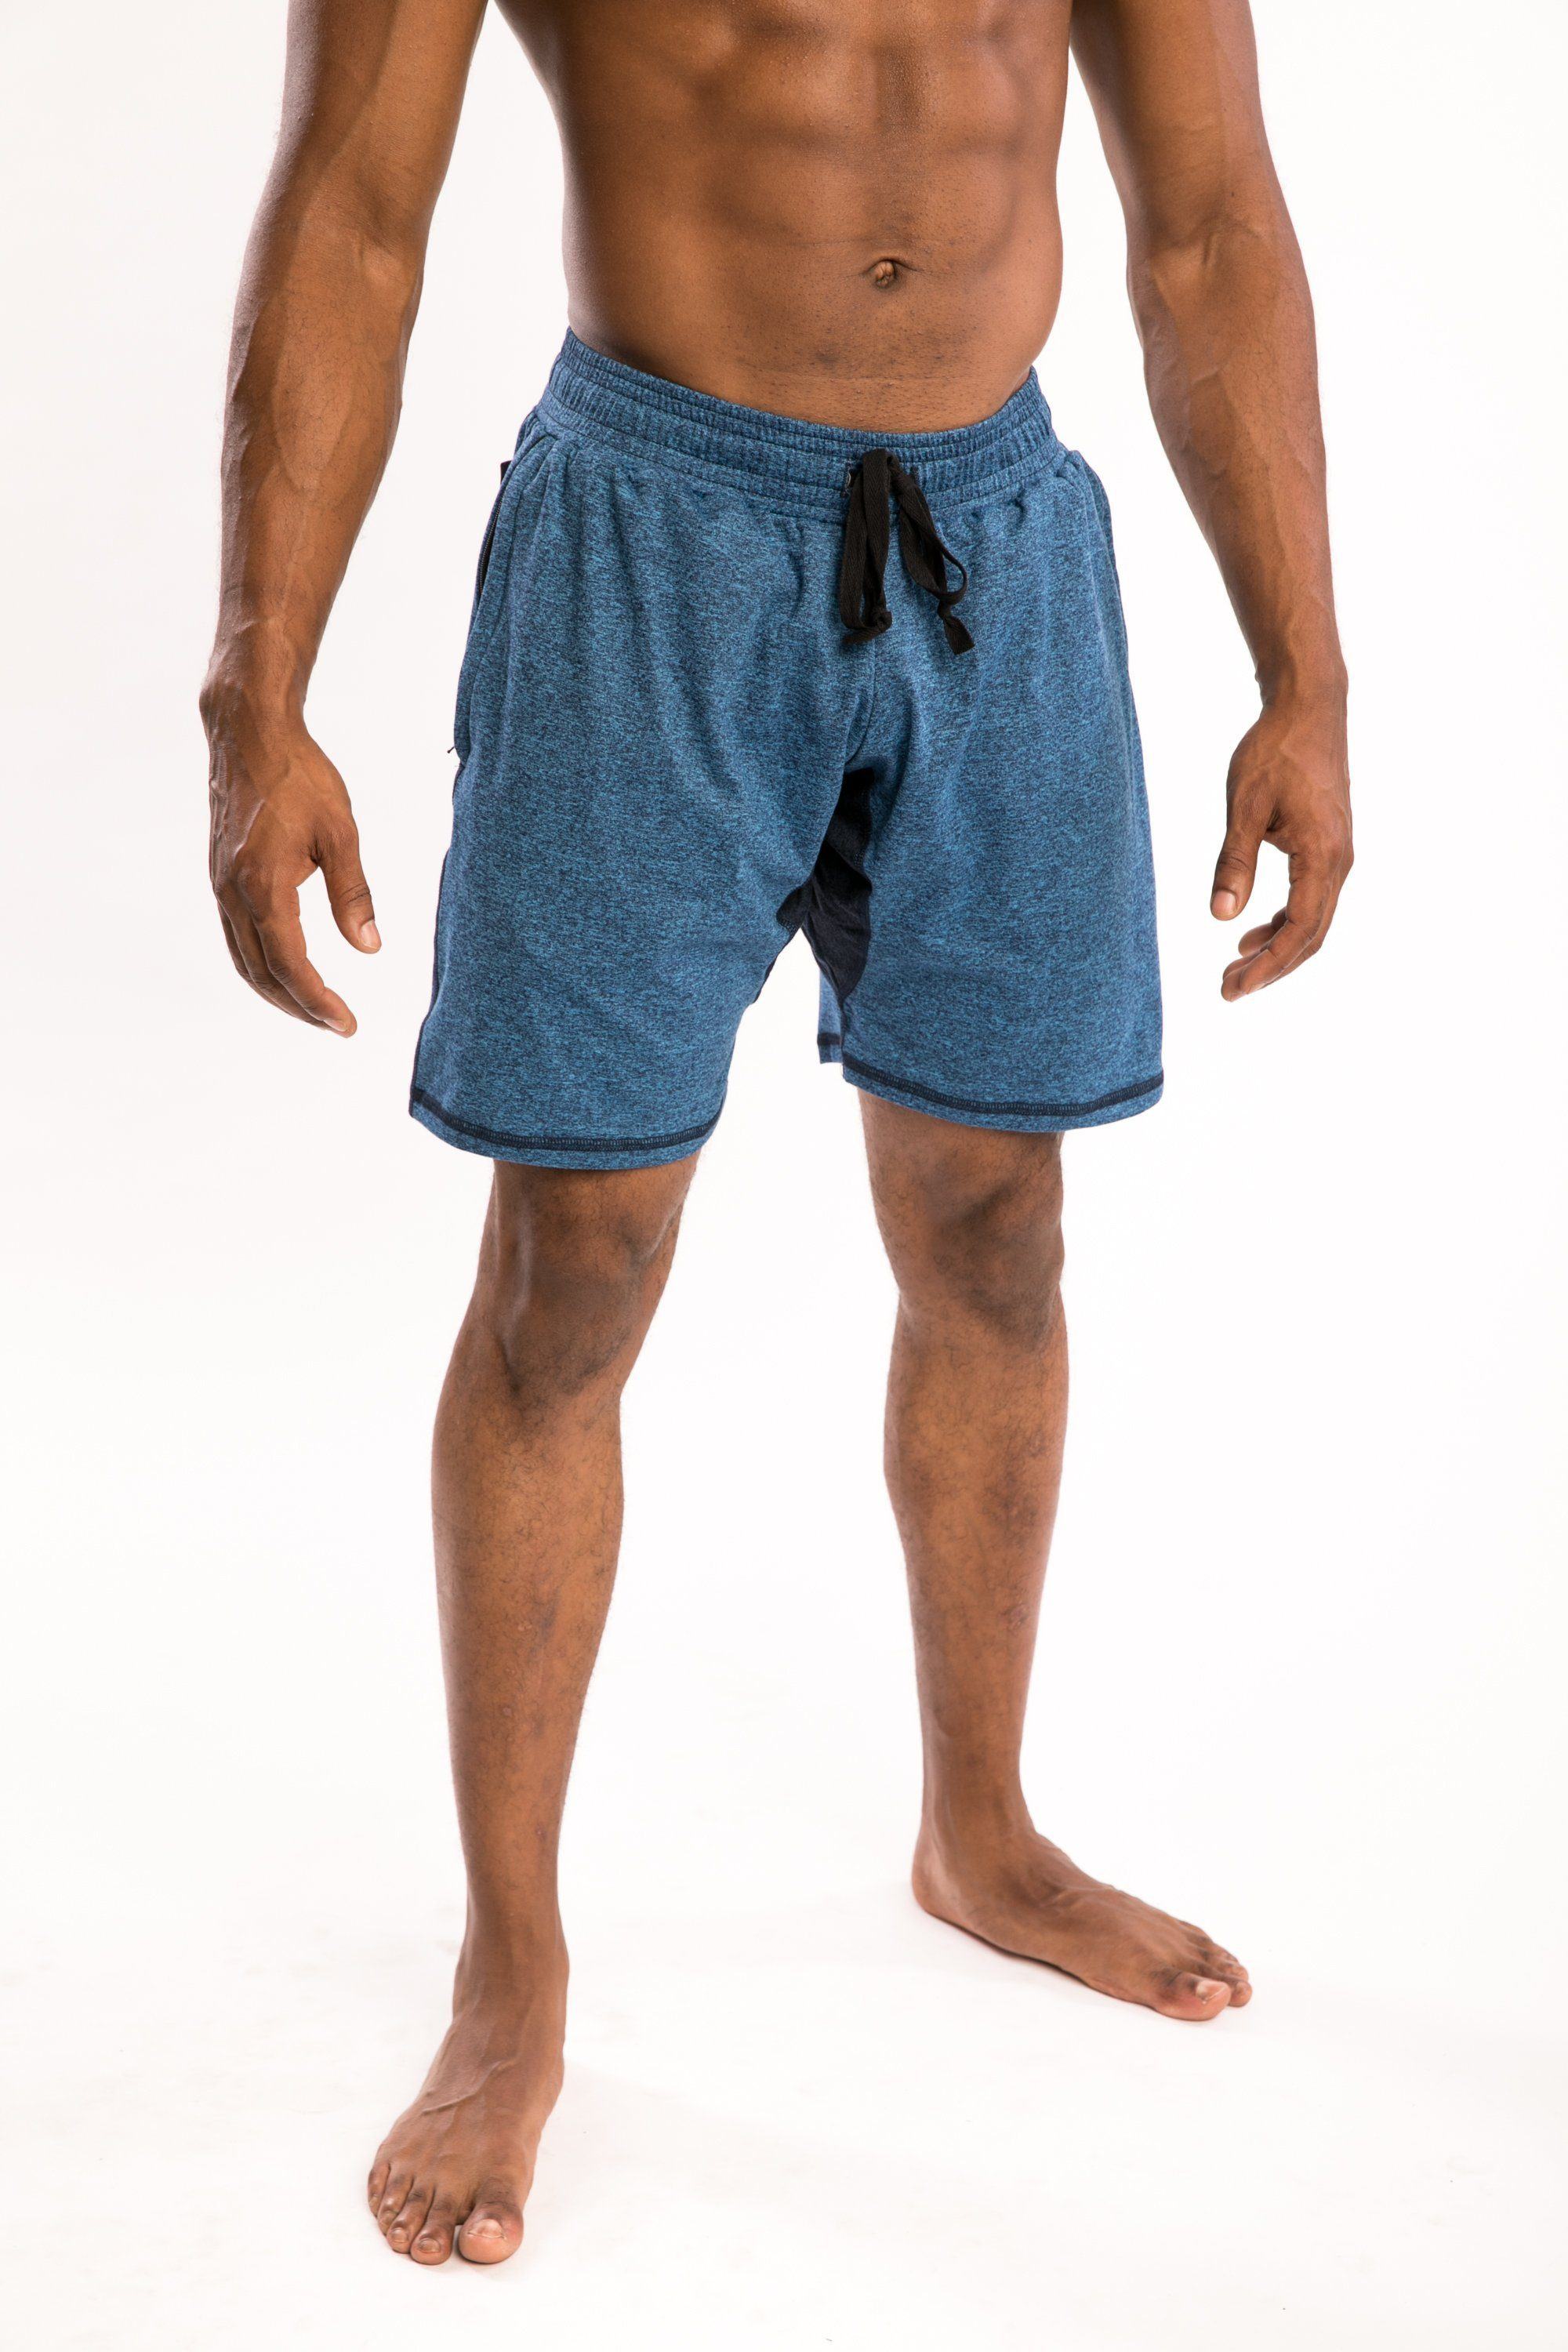 COBALT/NAVY Shorts-SHORTS-Pi Movement-XS-Pi Movement